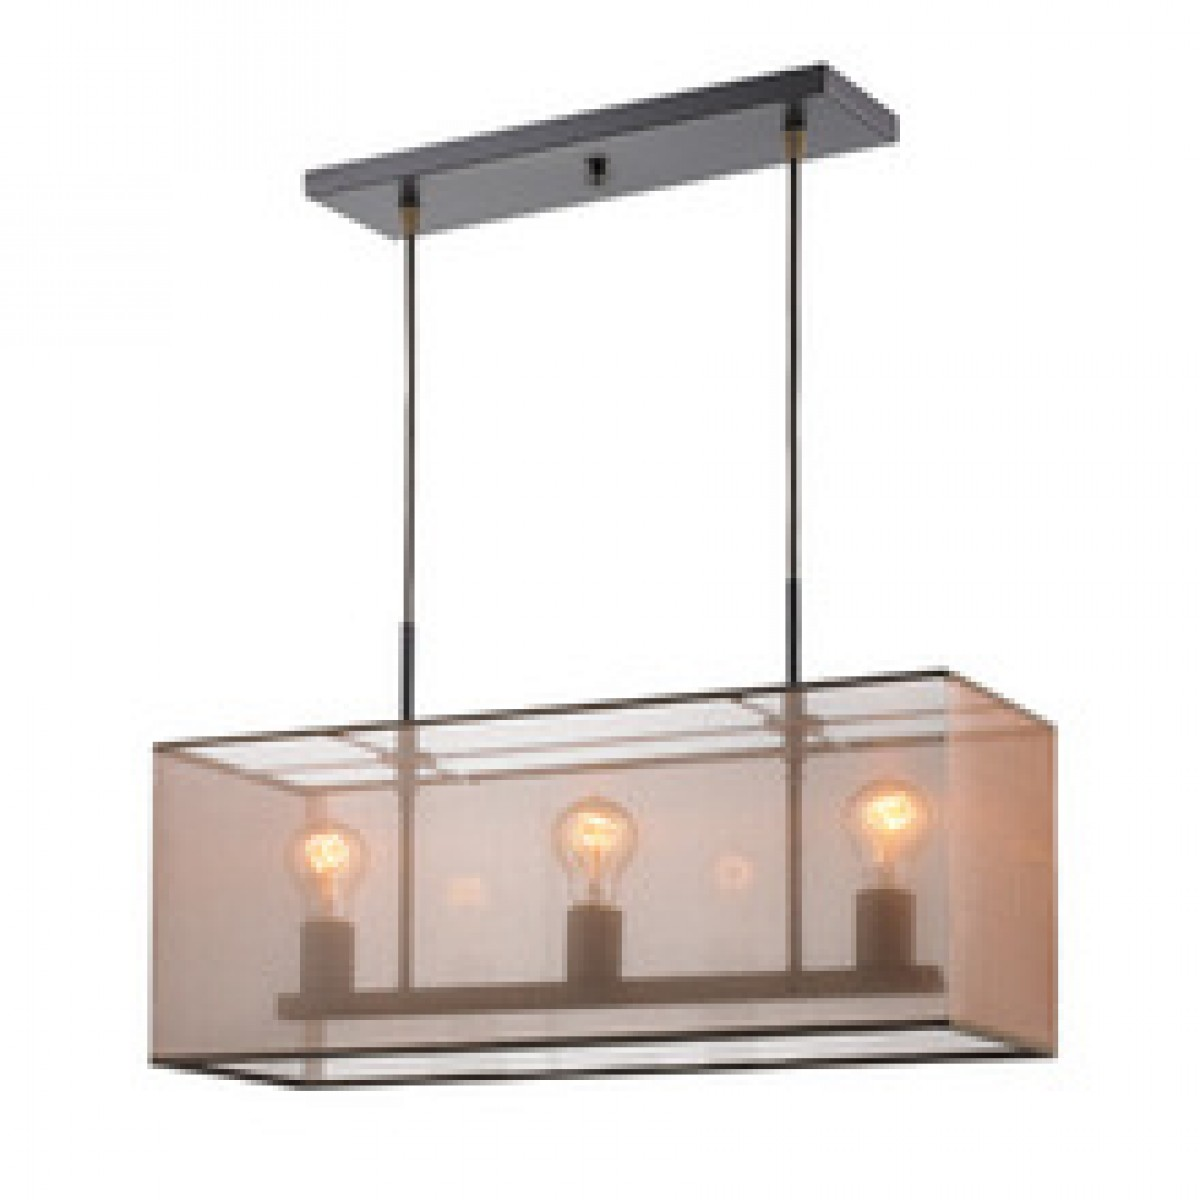 Pendant Light For Hotel And Hospitality Rh Style Made By China Lighting Factory Coart